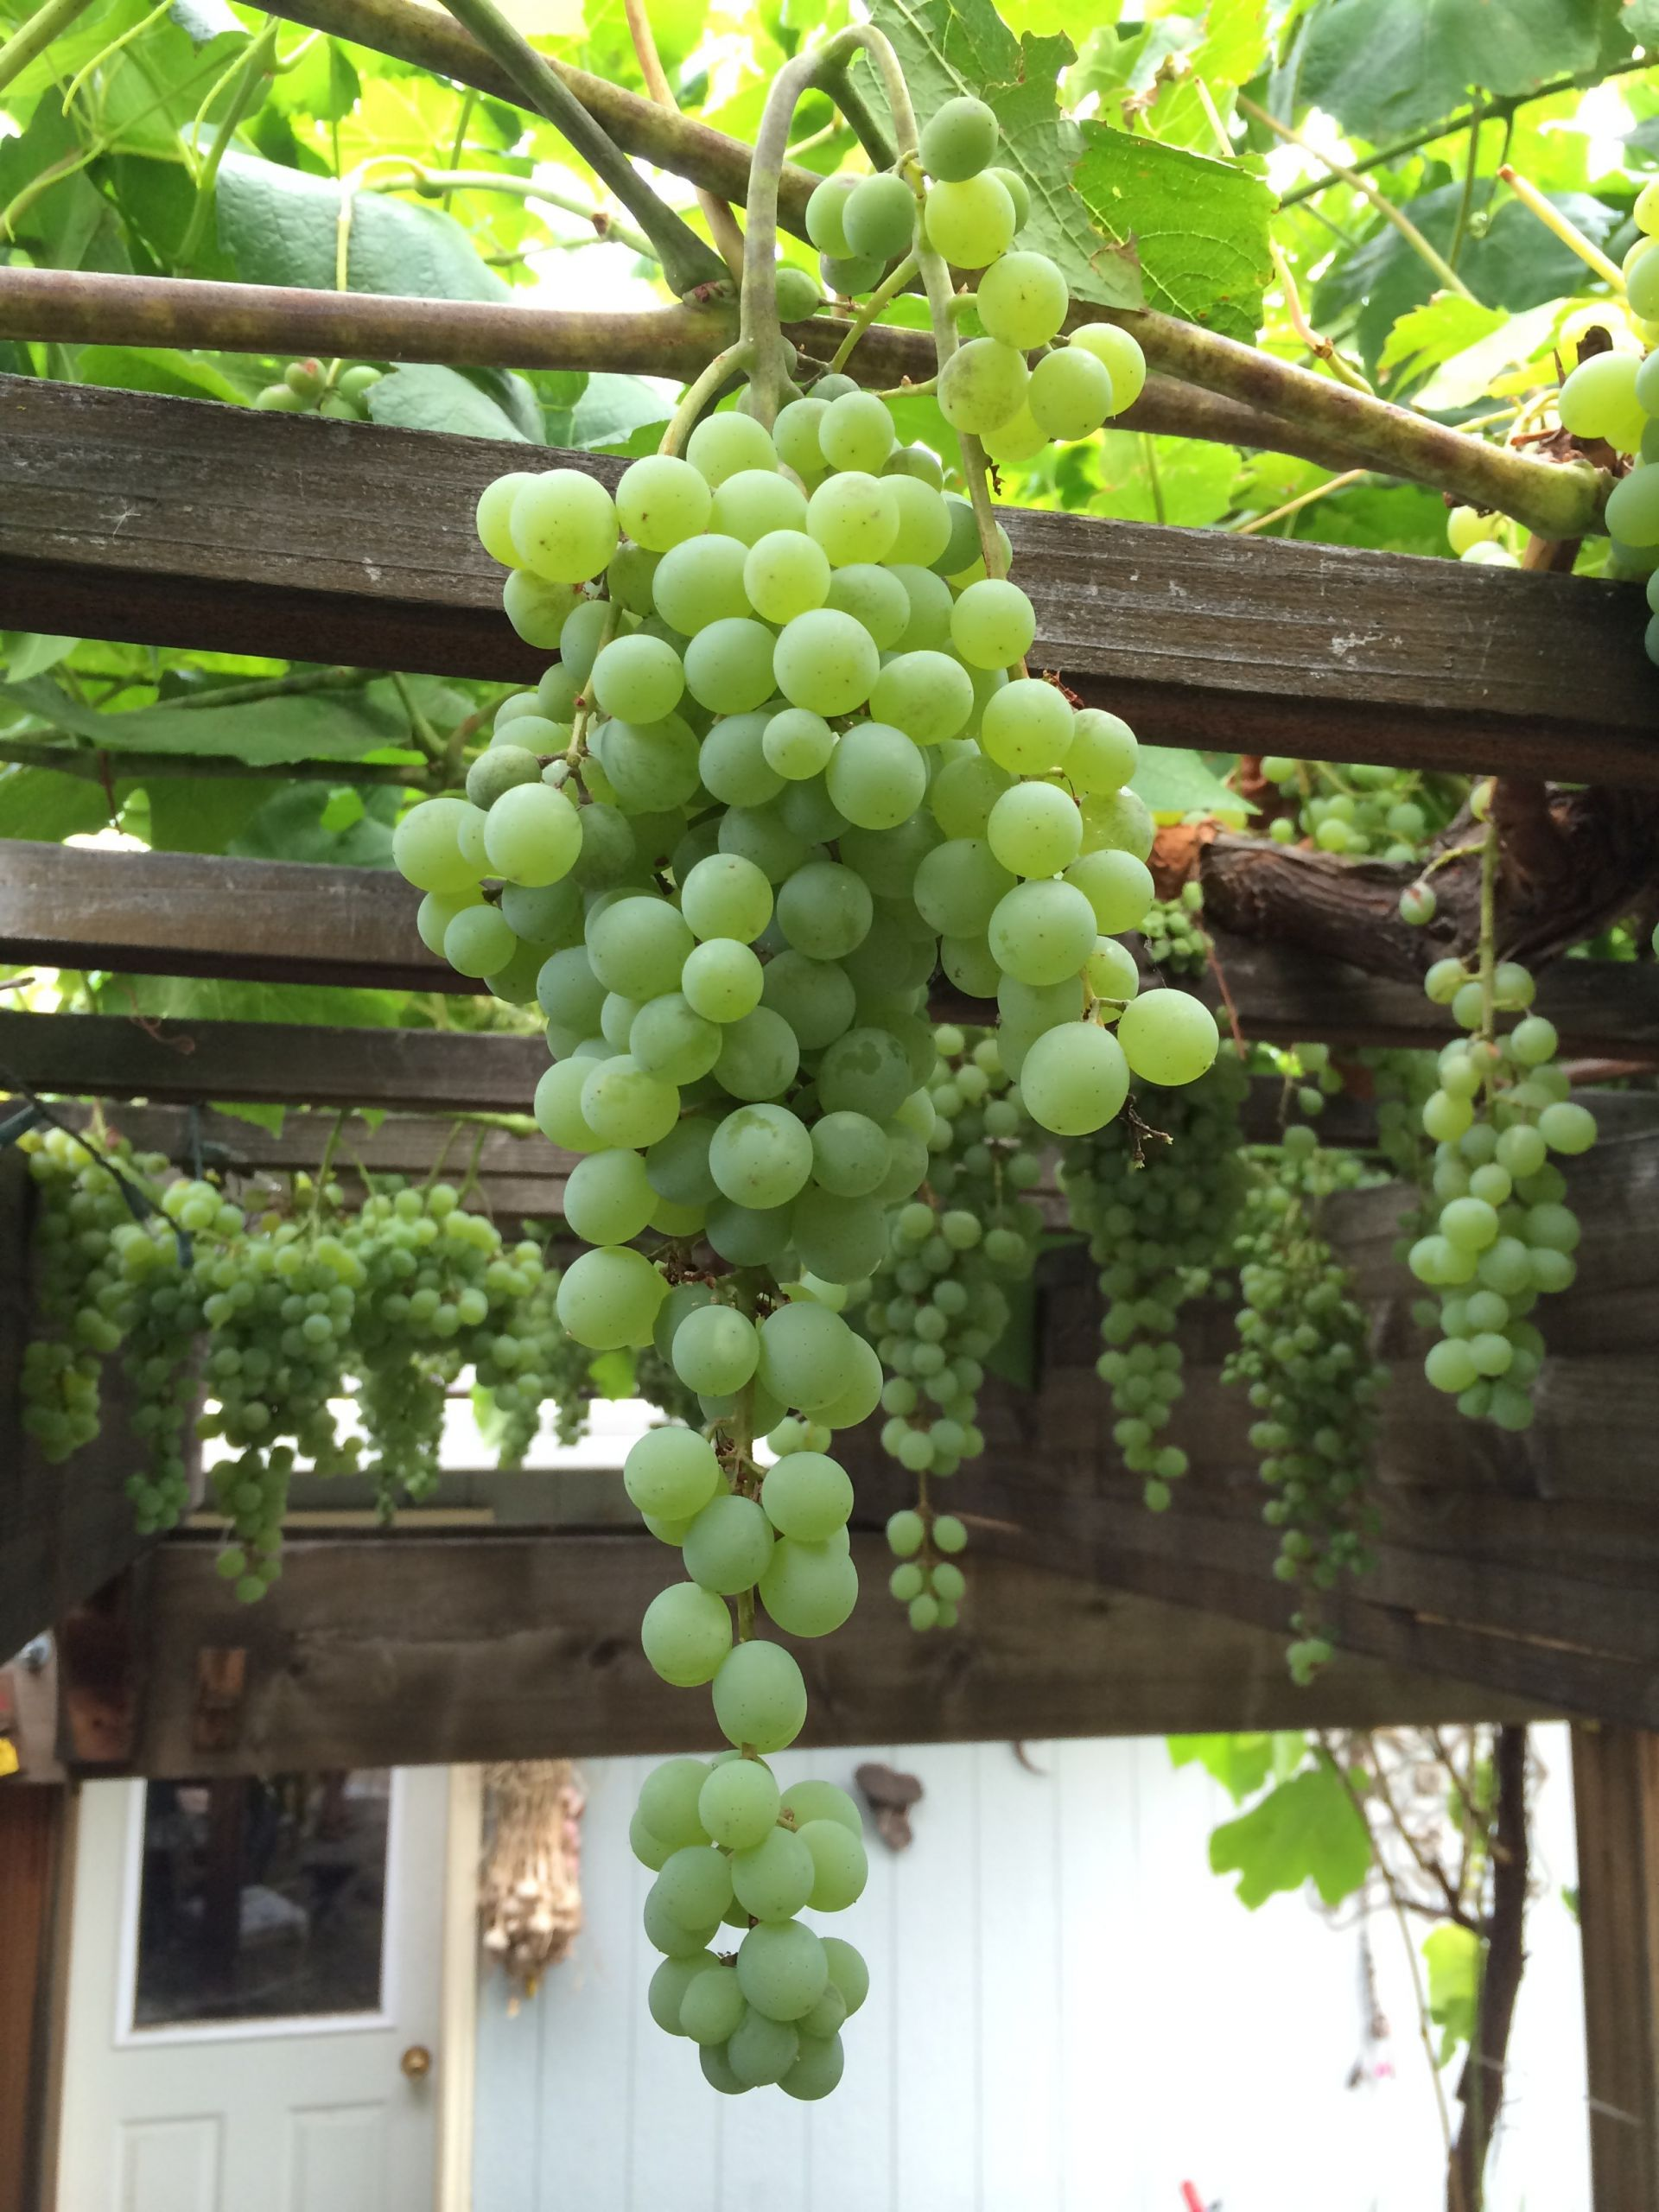 Growing Grapes In Backyard  Tips for Growing and Pruning Table Grapes in the Home